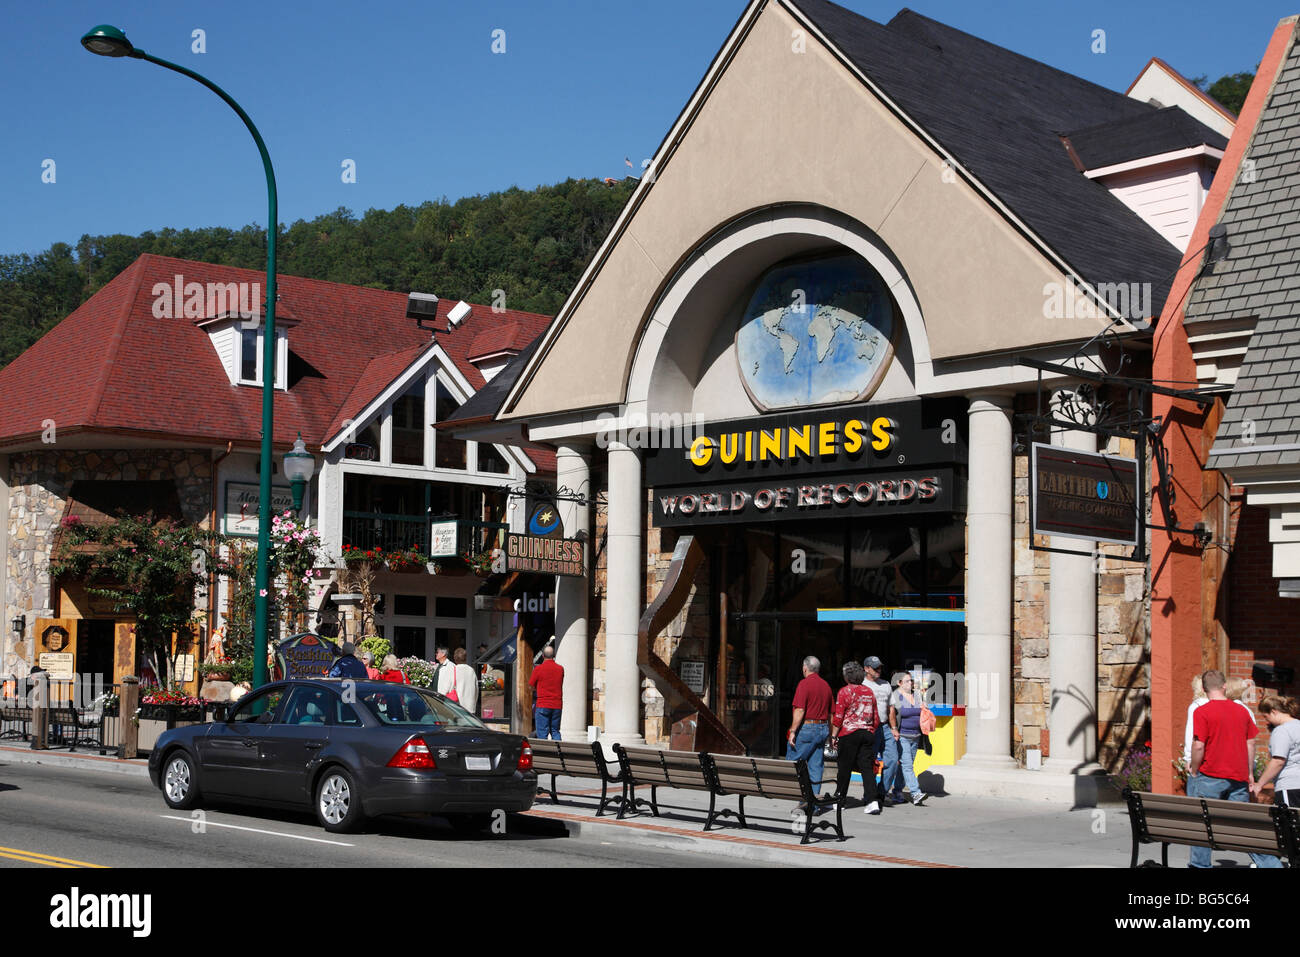 Guinness World of Records museum building in Gatlinburg Tennessee USA - Stock Image